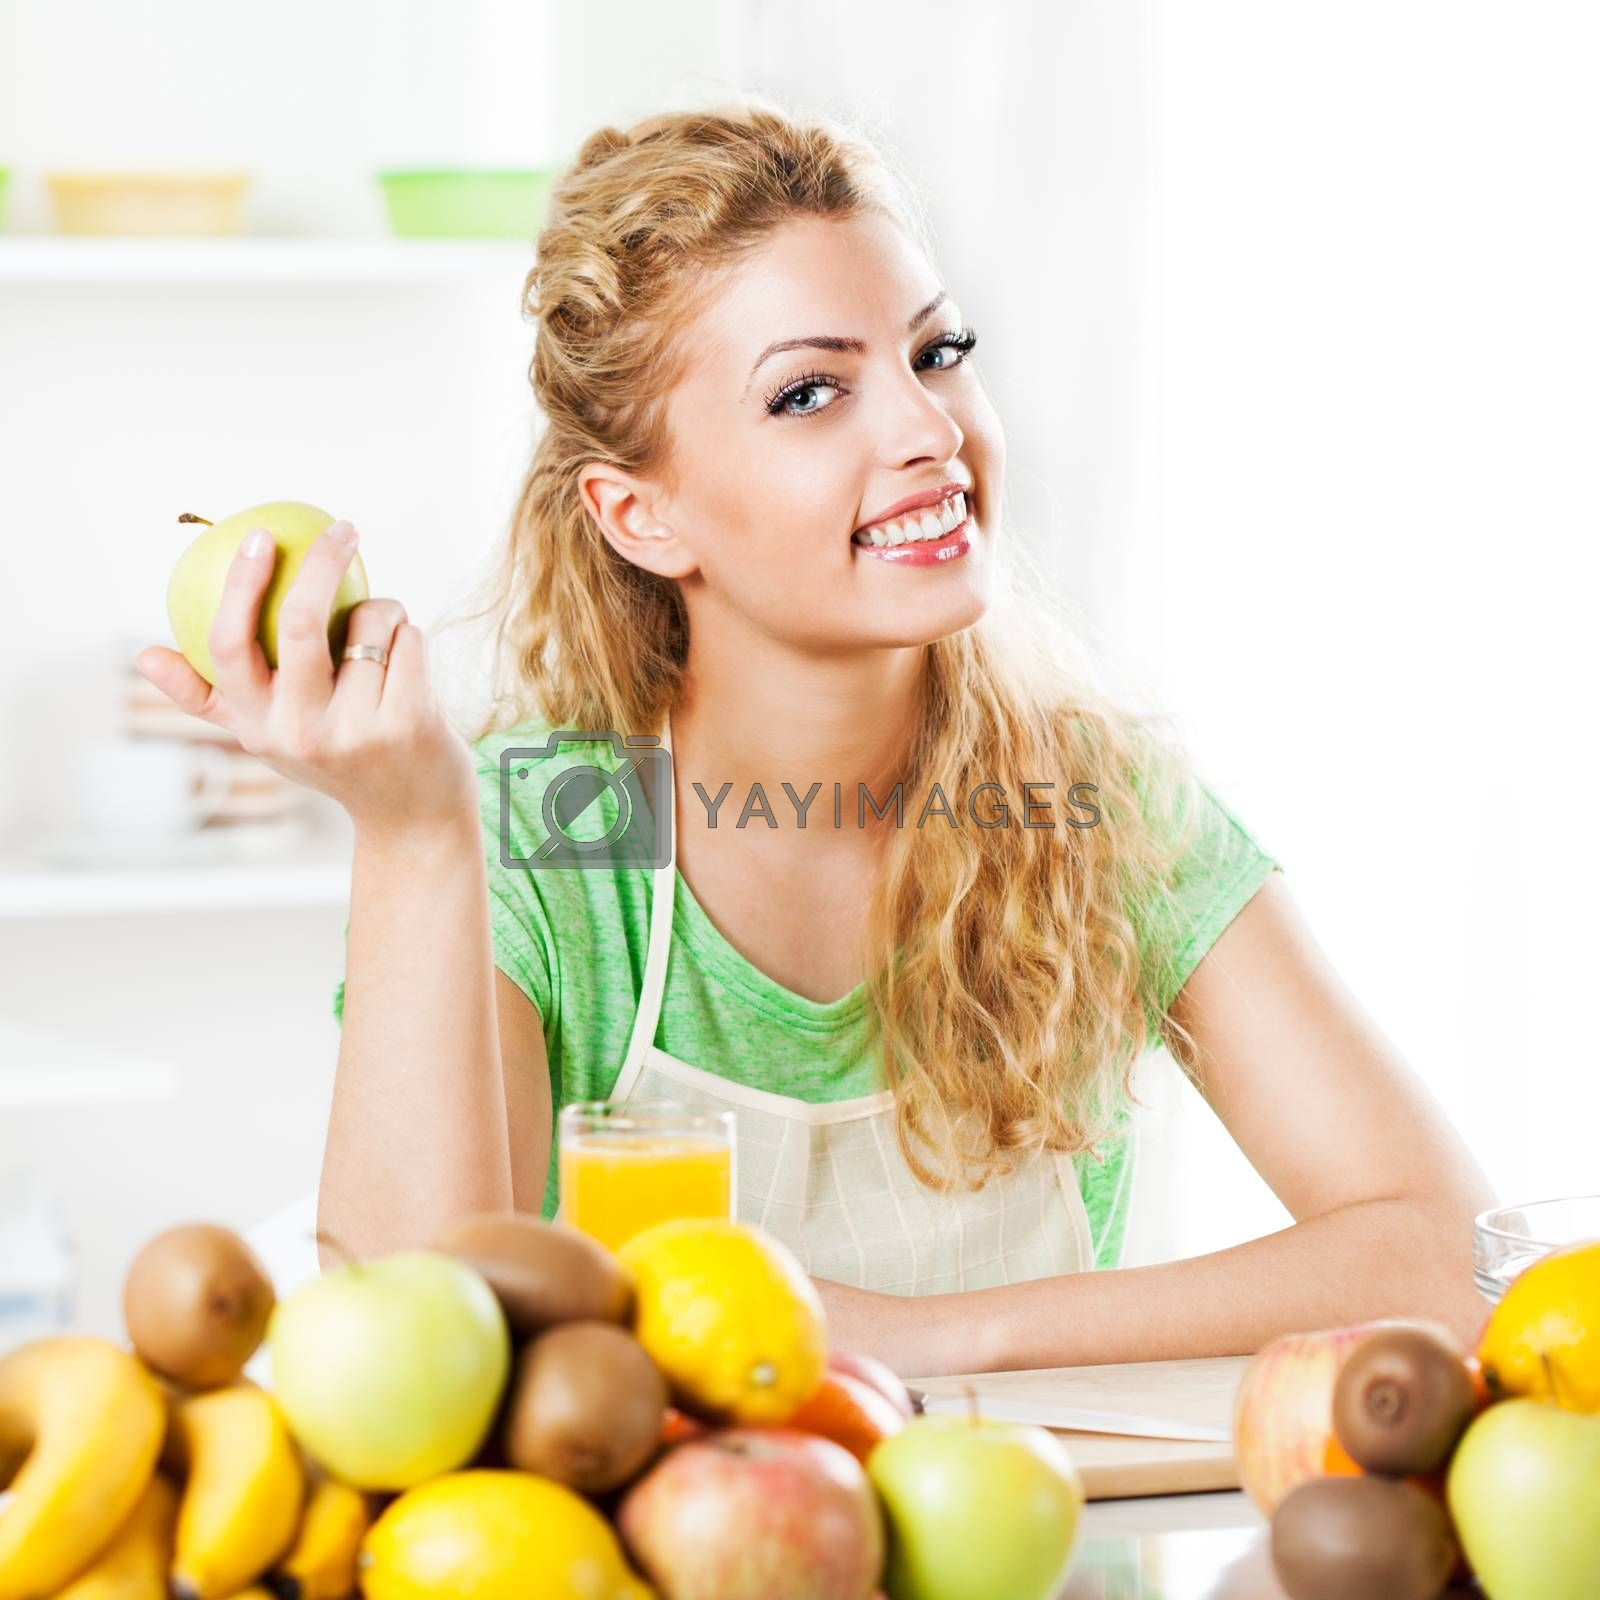 Beautiful young woman in the kitchen, holding an apple. Looking at camera.